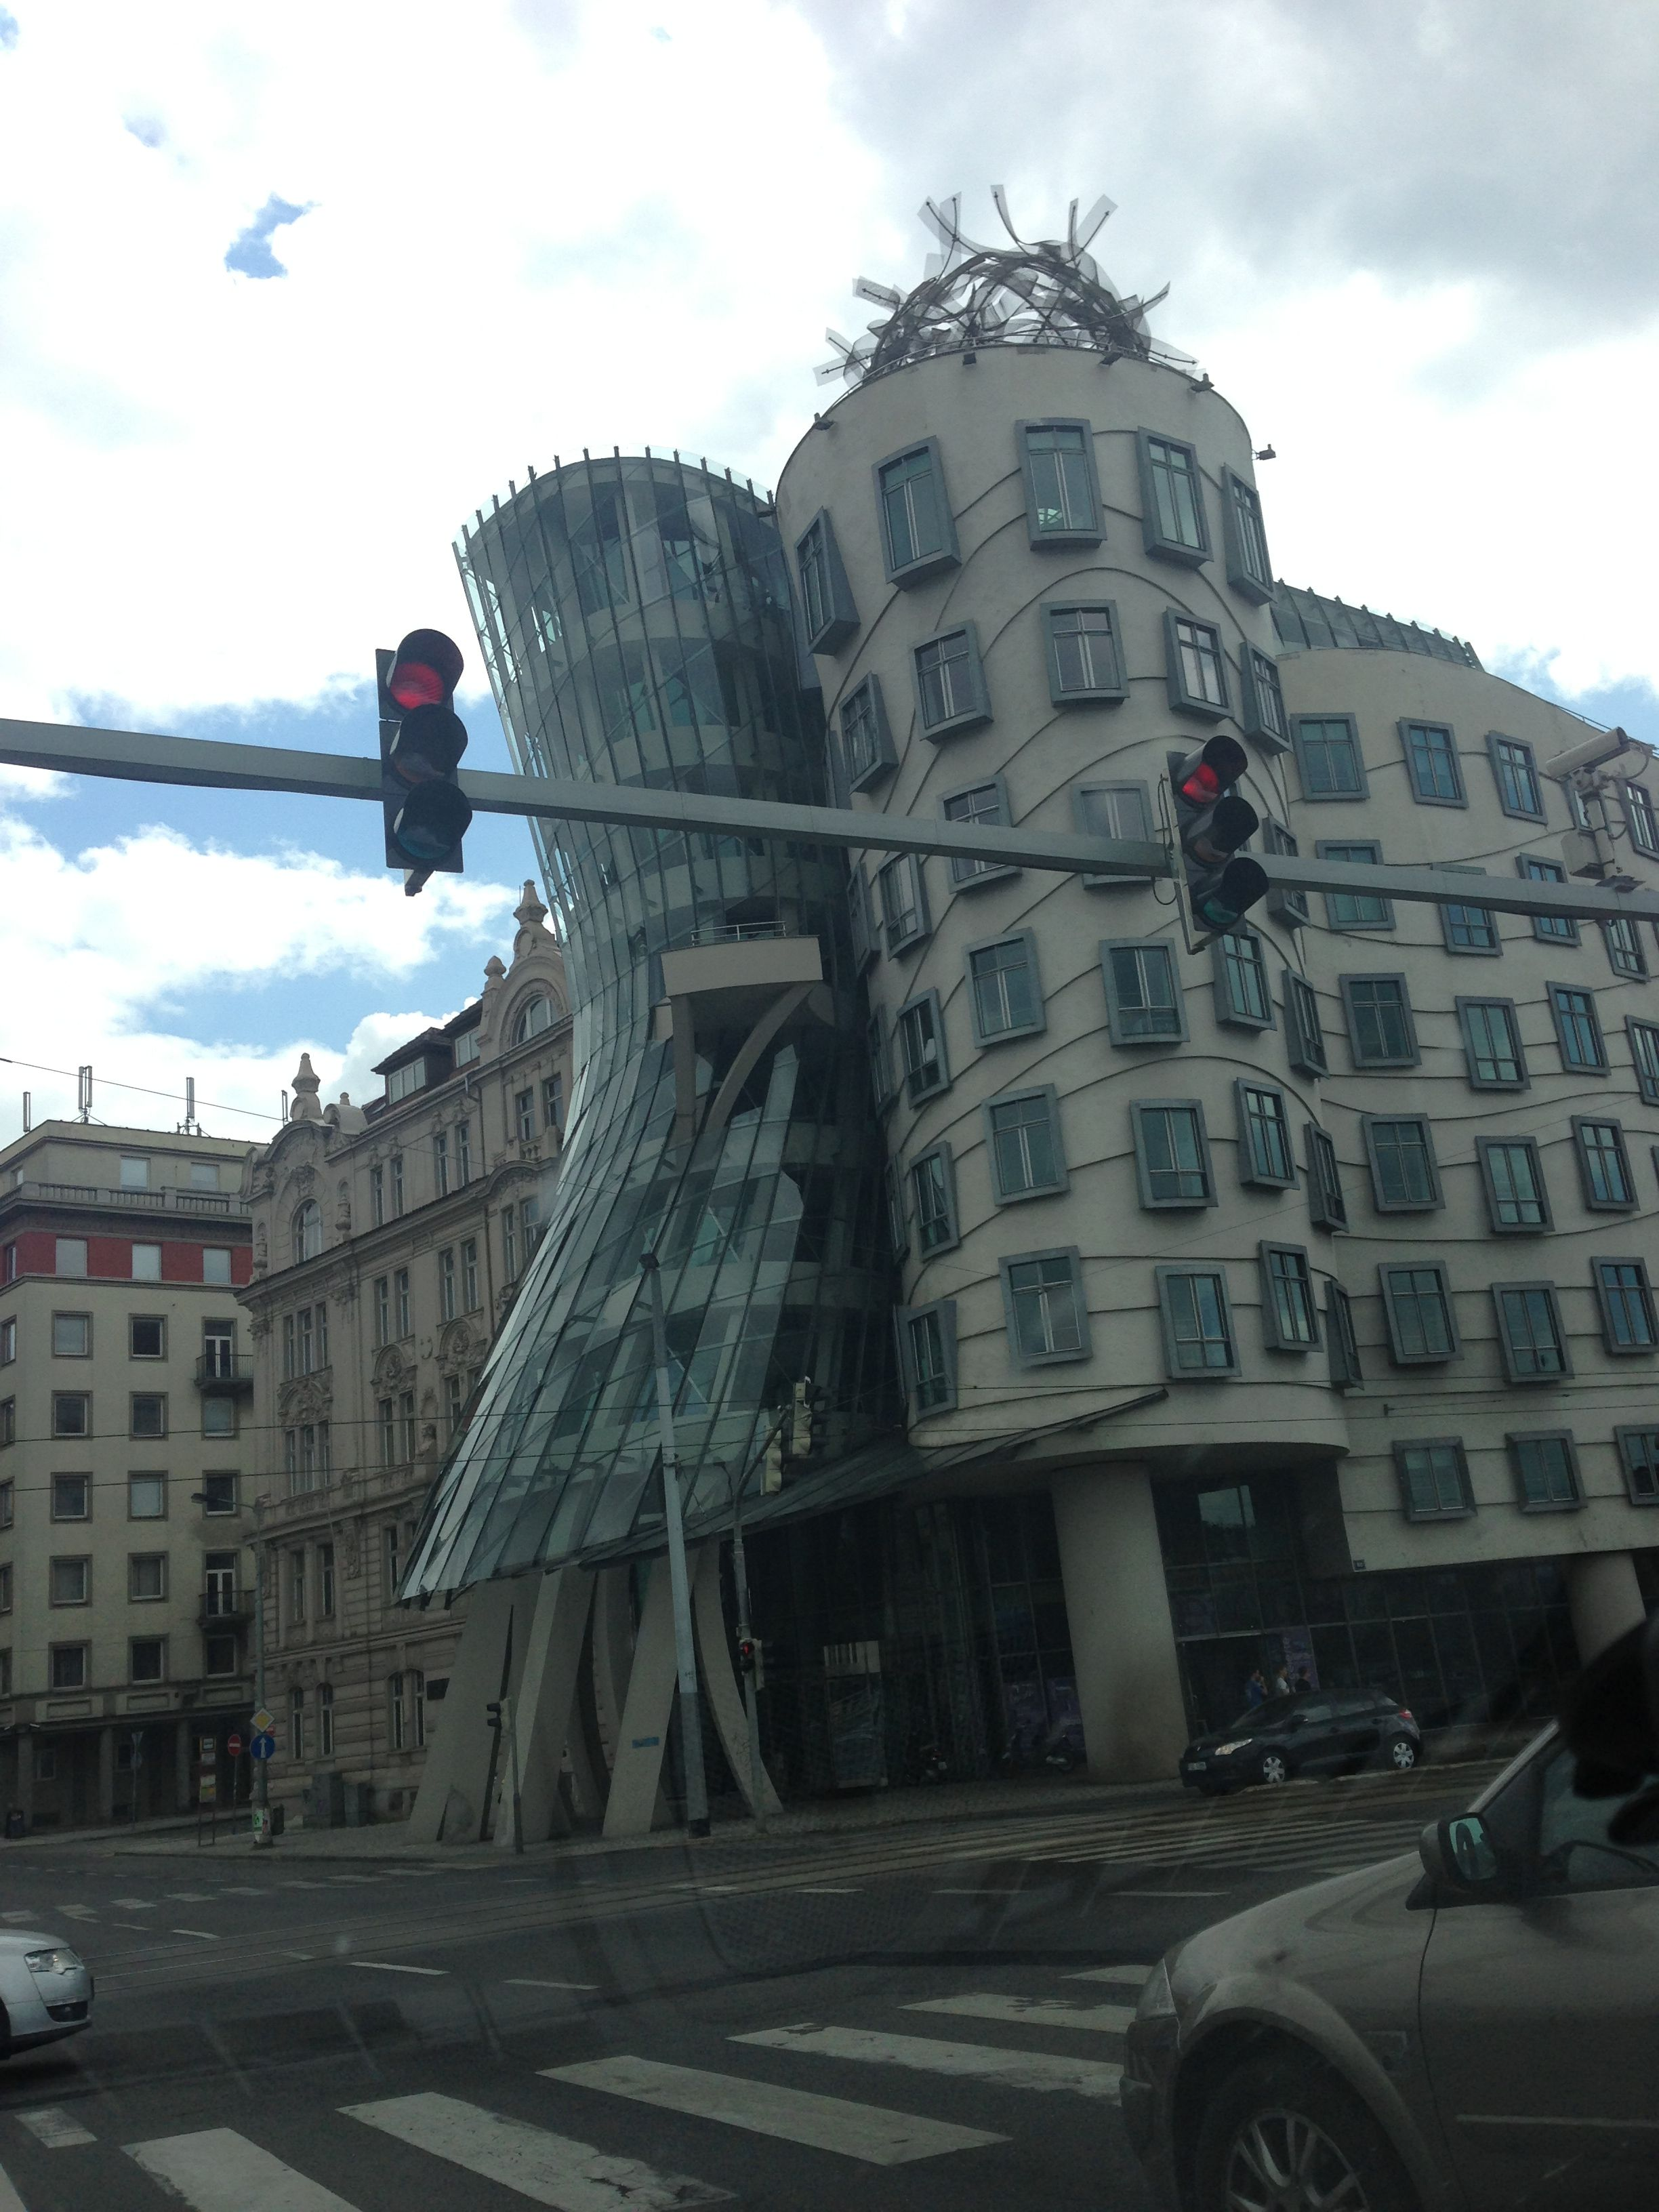 Heavily damaged building by earthquake.... No, this is architecture!